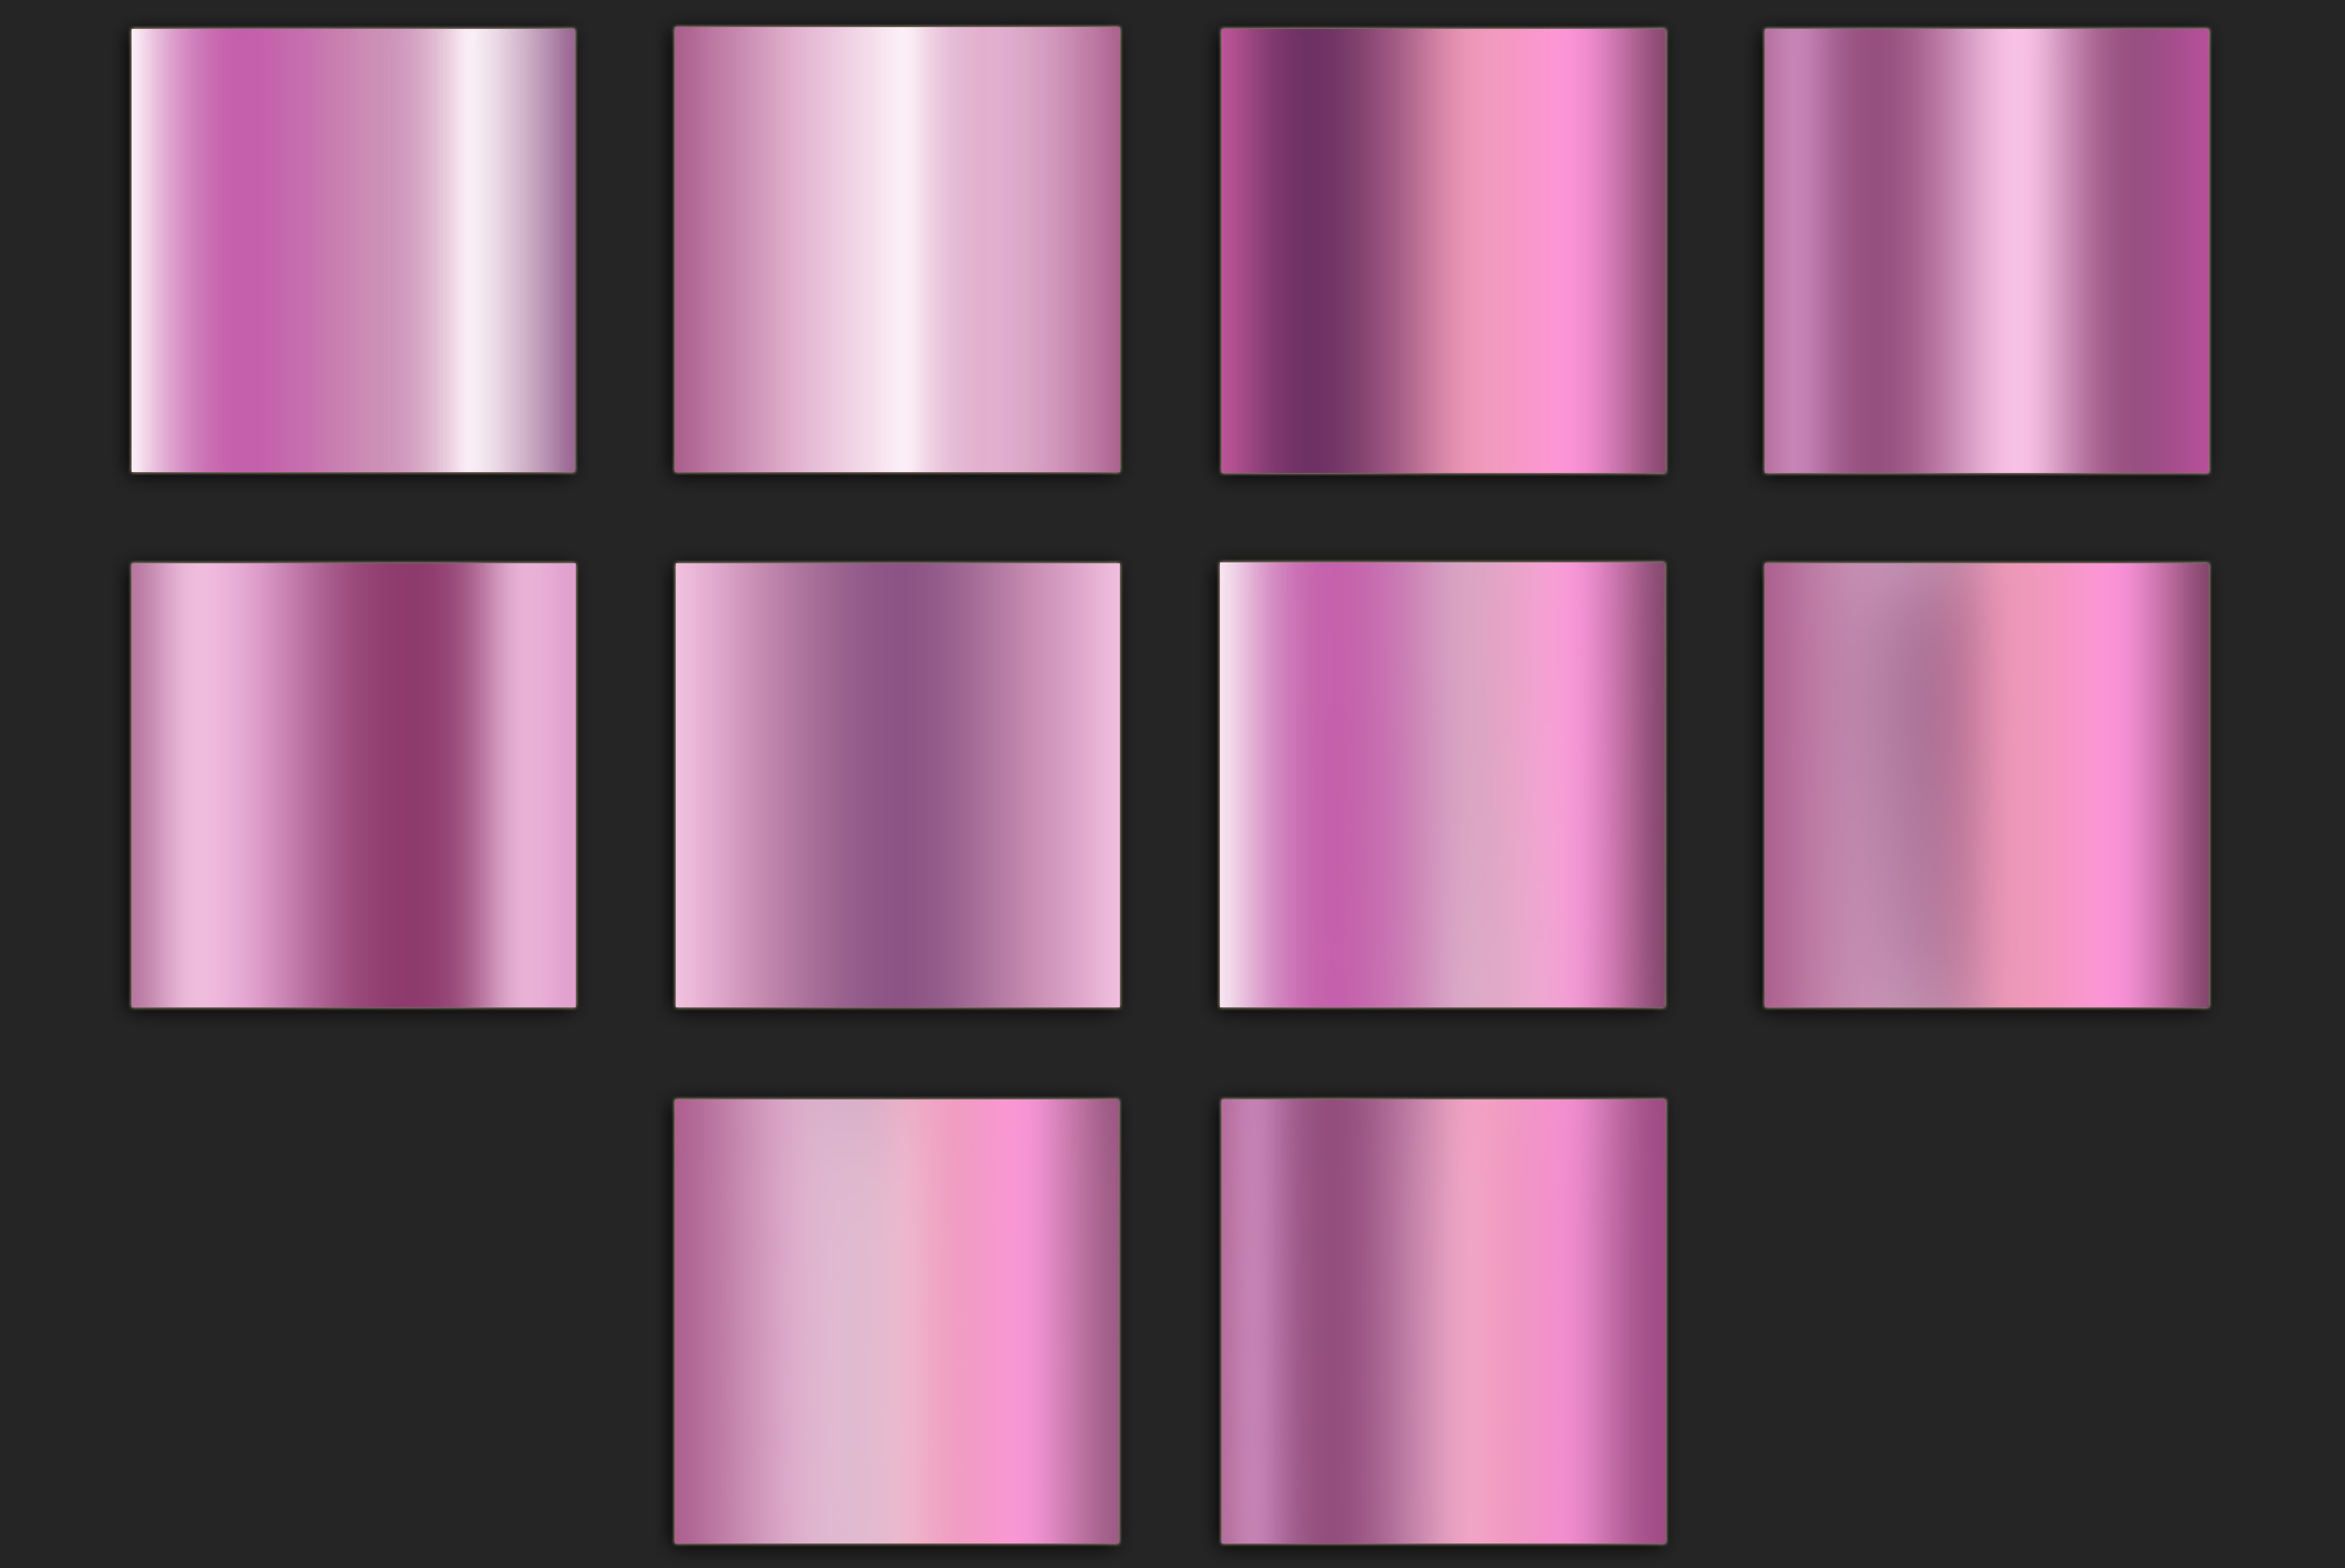 Pink Foil Textures example image 3